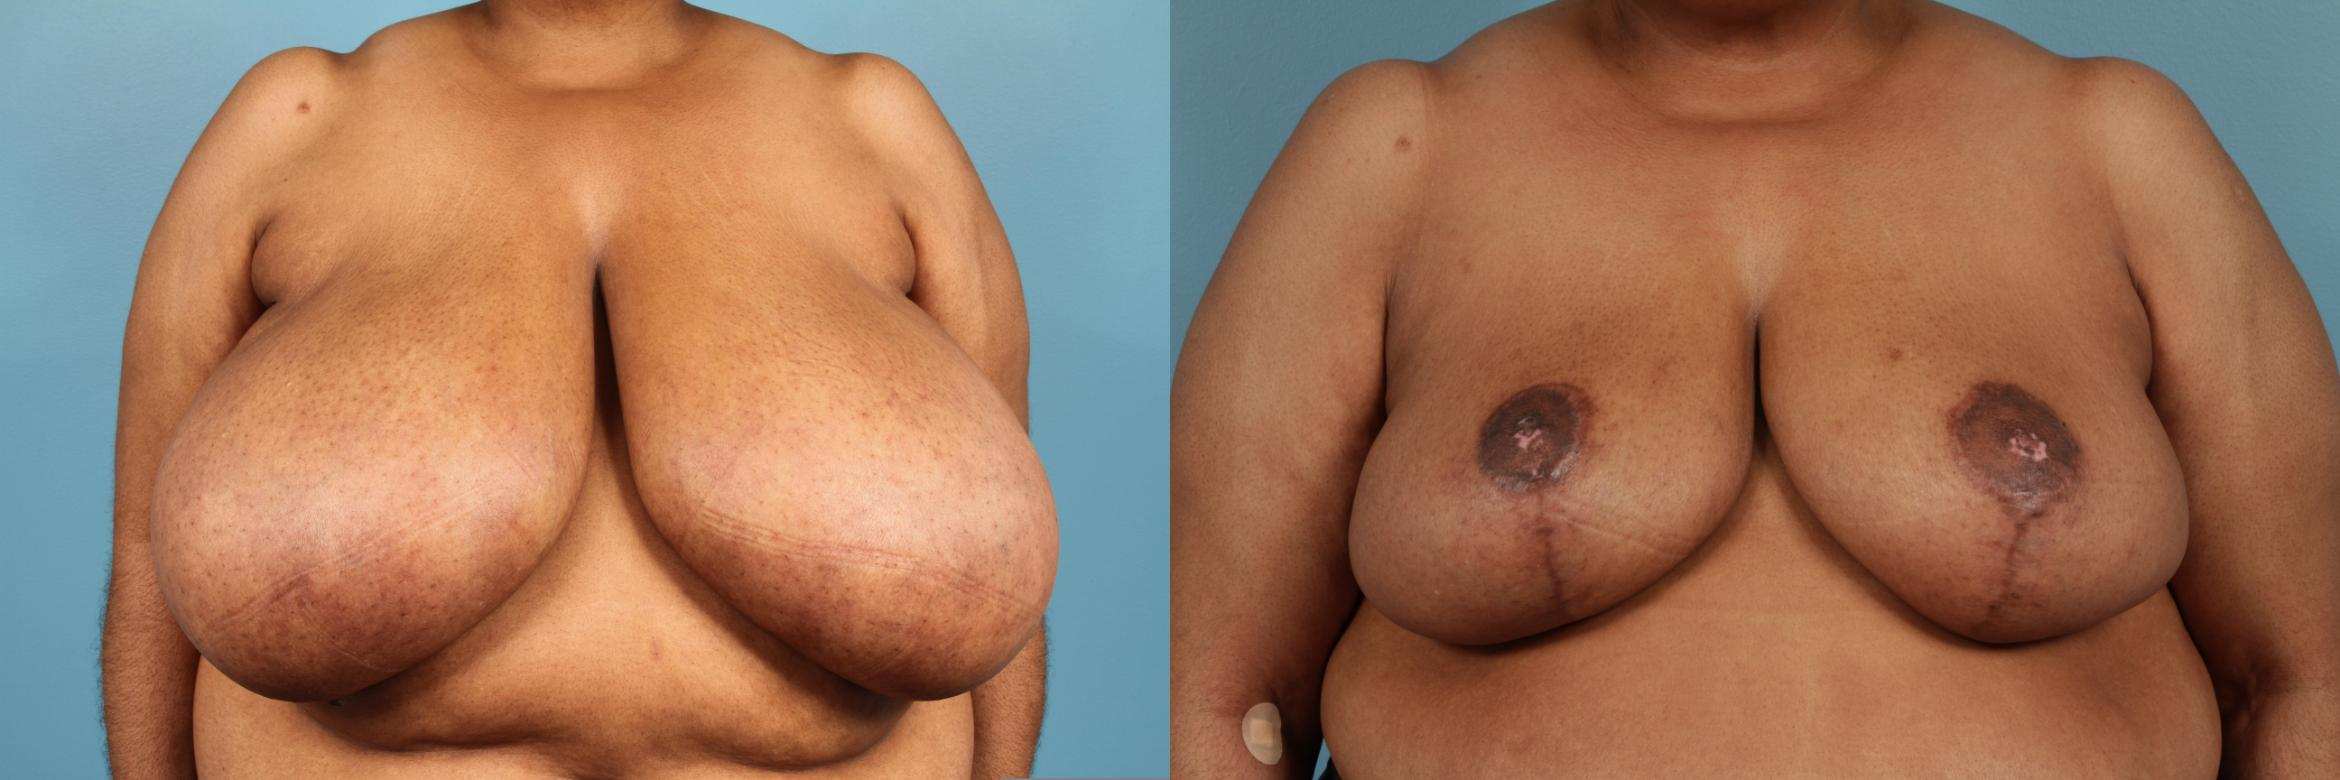 Breast Reduction Case 135 Before & After View #1 | Chicago, IL | TLKM Plastic Surgery